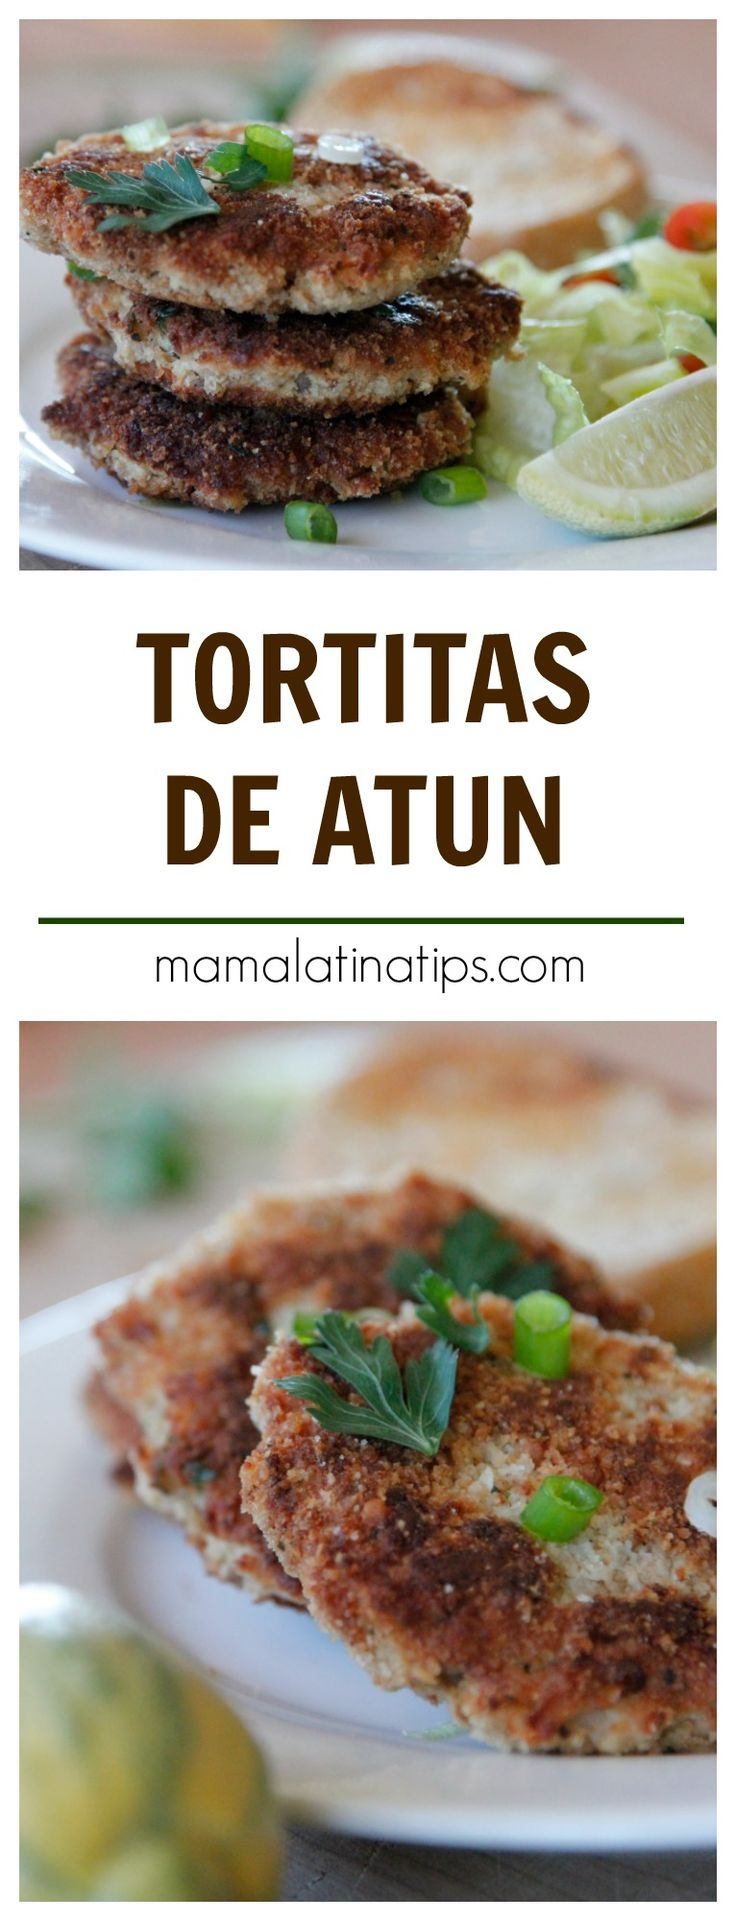 Easy, fast, tuna patties with potatoes perfect for lent or any time of the year. The way we made them in Mexico. Gourmet Recipes, Healthy Dinner Recipes, Mexican Food Recipes, Healthy Snacks, Cooking Recipes, Recipes For Lent, Healthy Life, Tuna Patties, Healthy Cheesecake